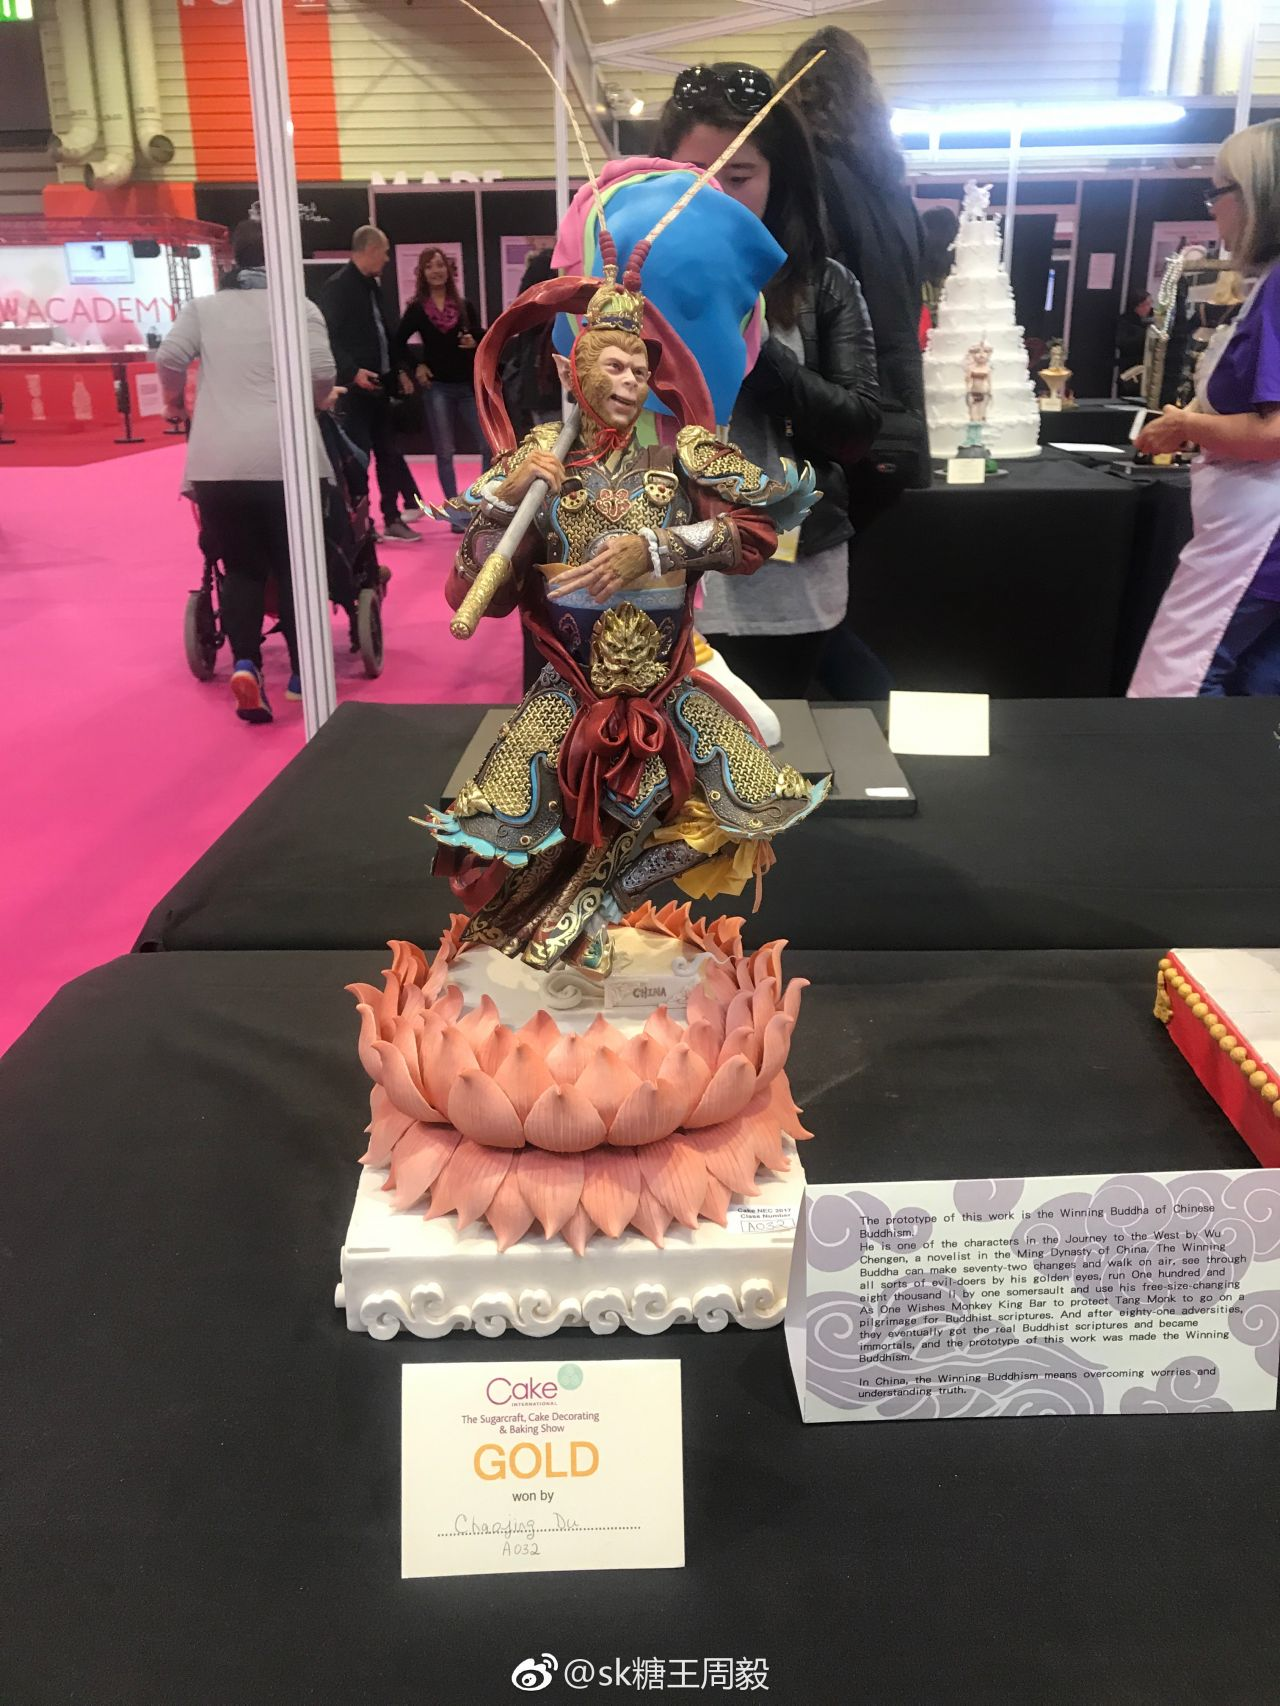 Chinese Sugar King's amazing fondant cakes win medals at UK Cake International